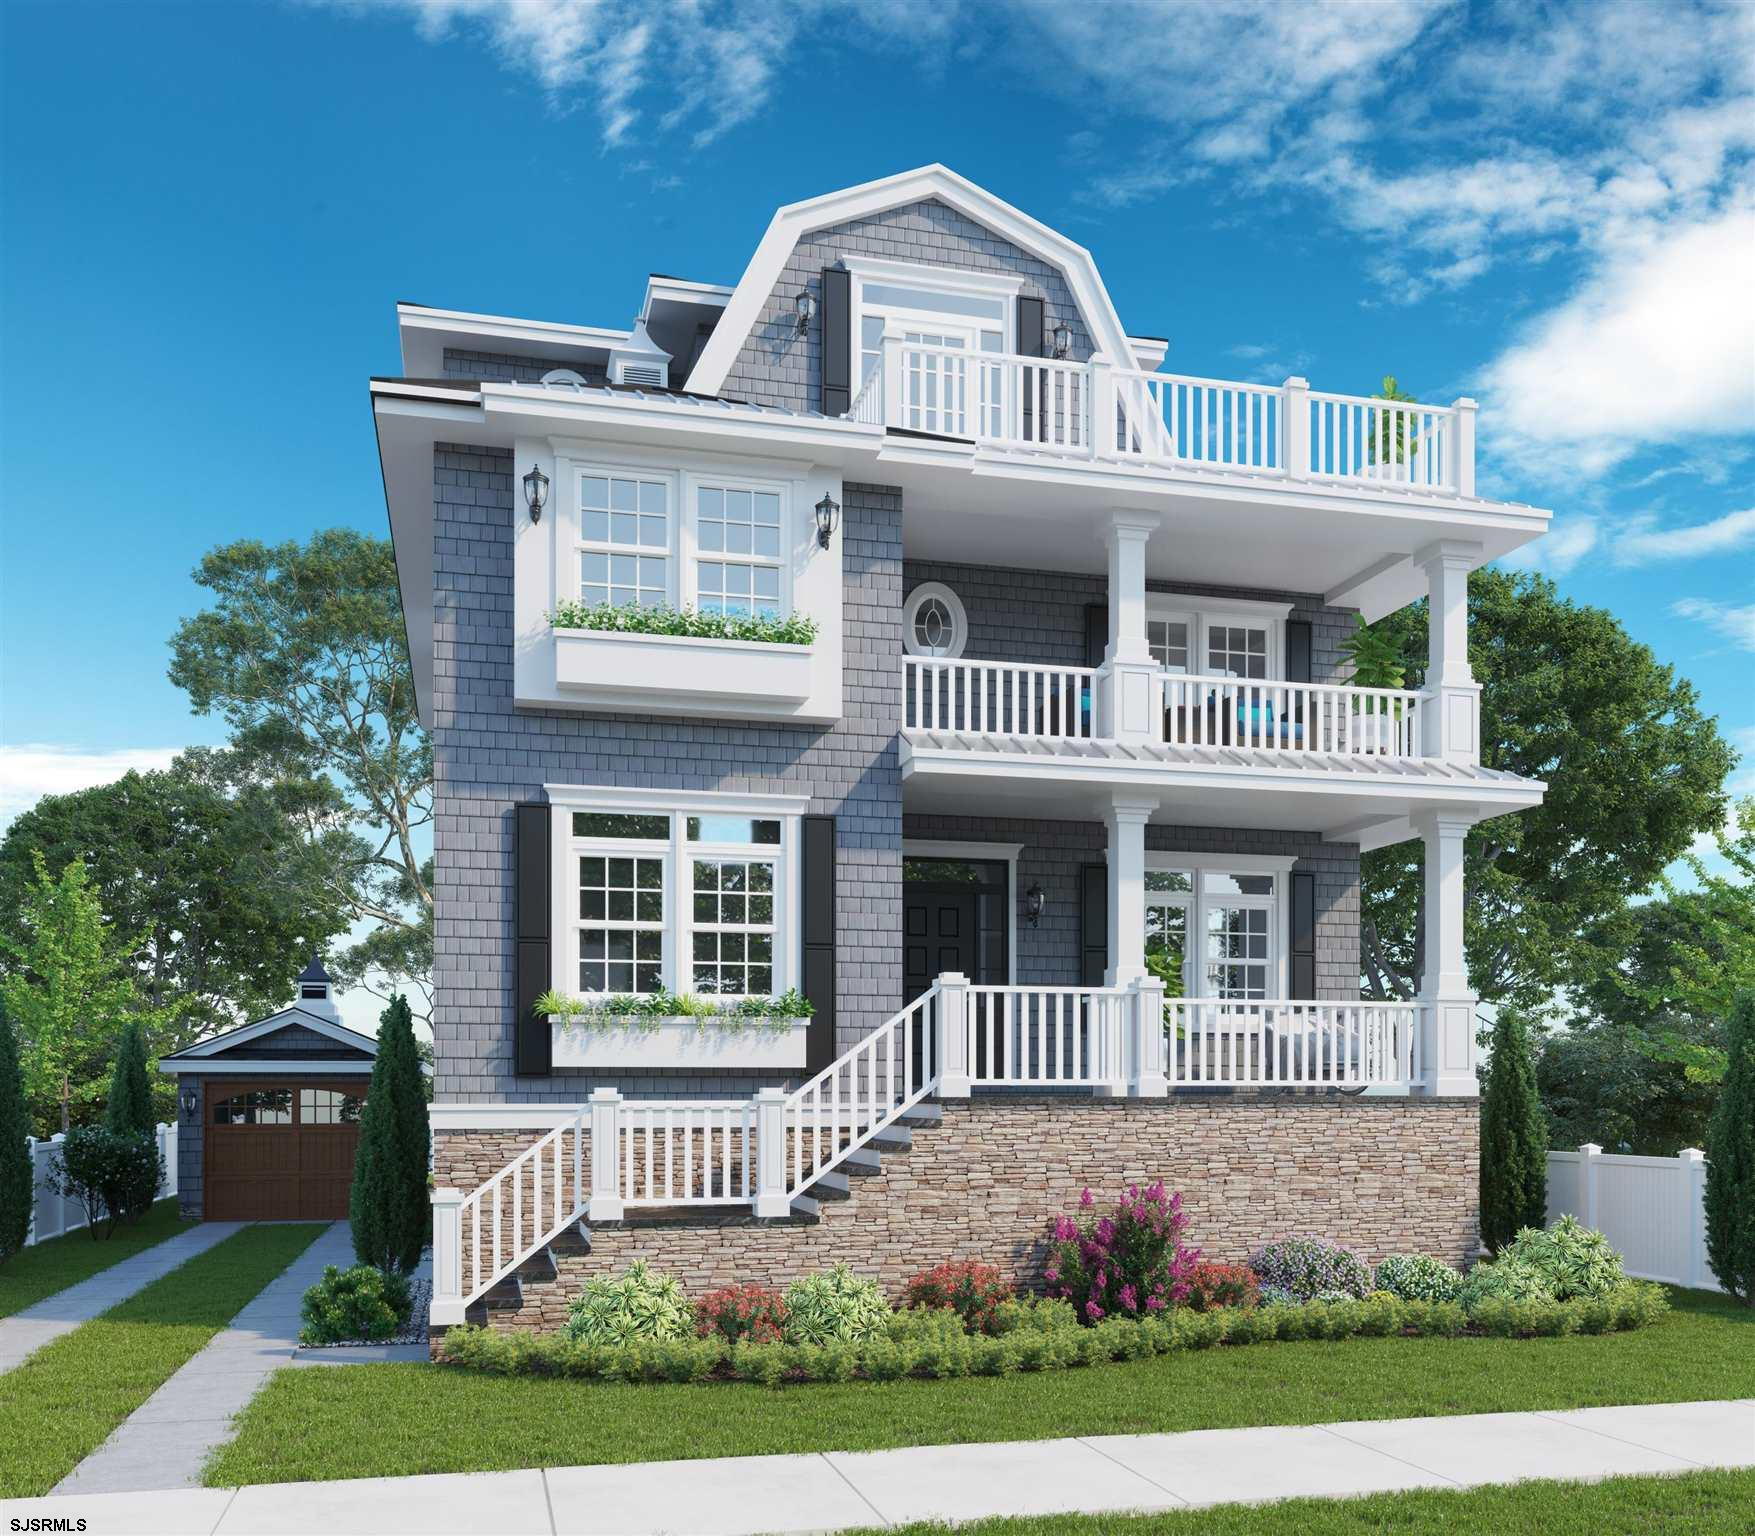 INTRODUCING OXFORDSHIRE! THE NEWEST DEVELOPMENT ON THE ISLAND! Located in the prestigious St. Leonar